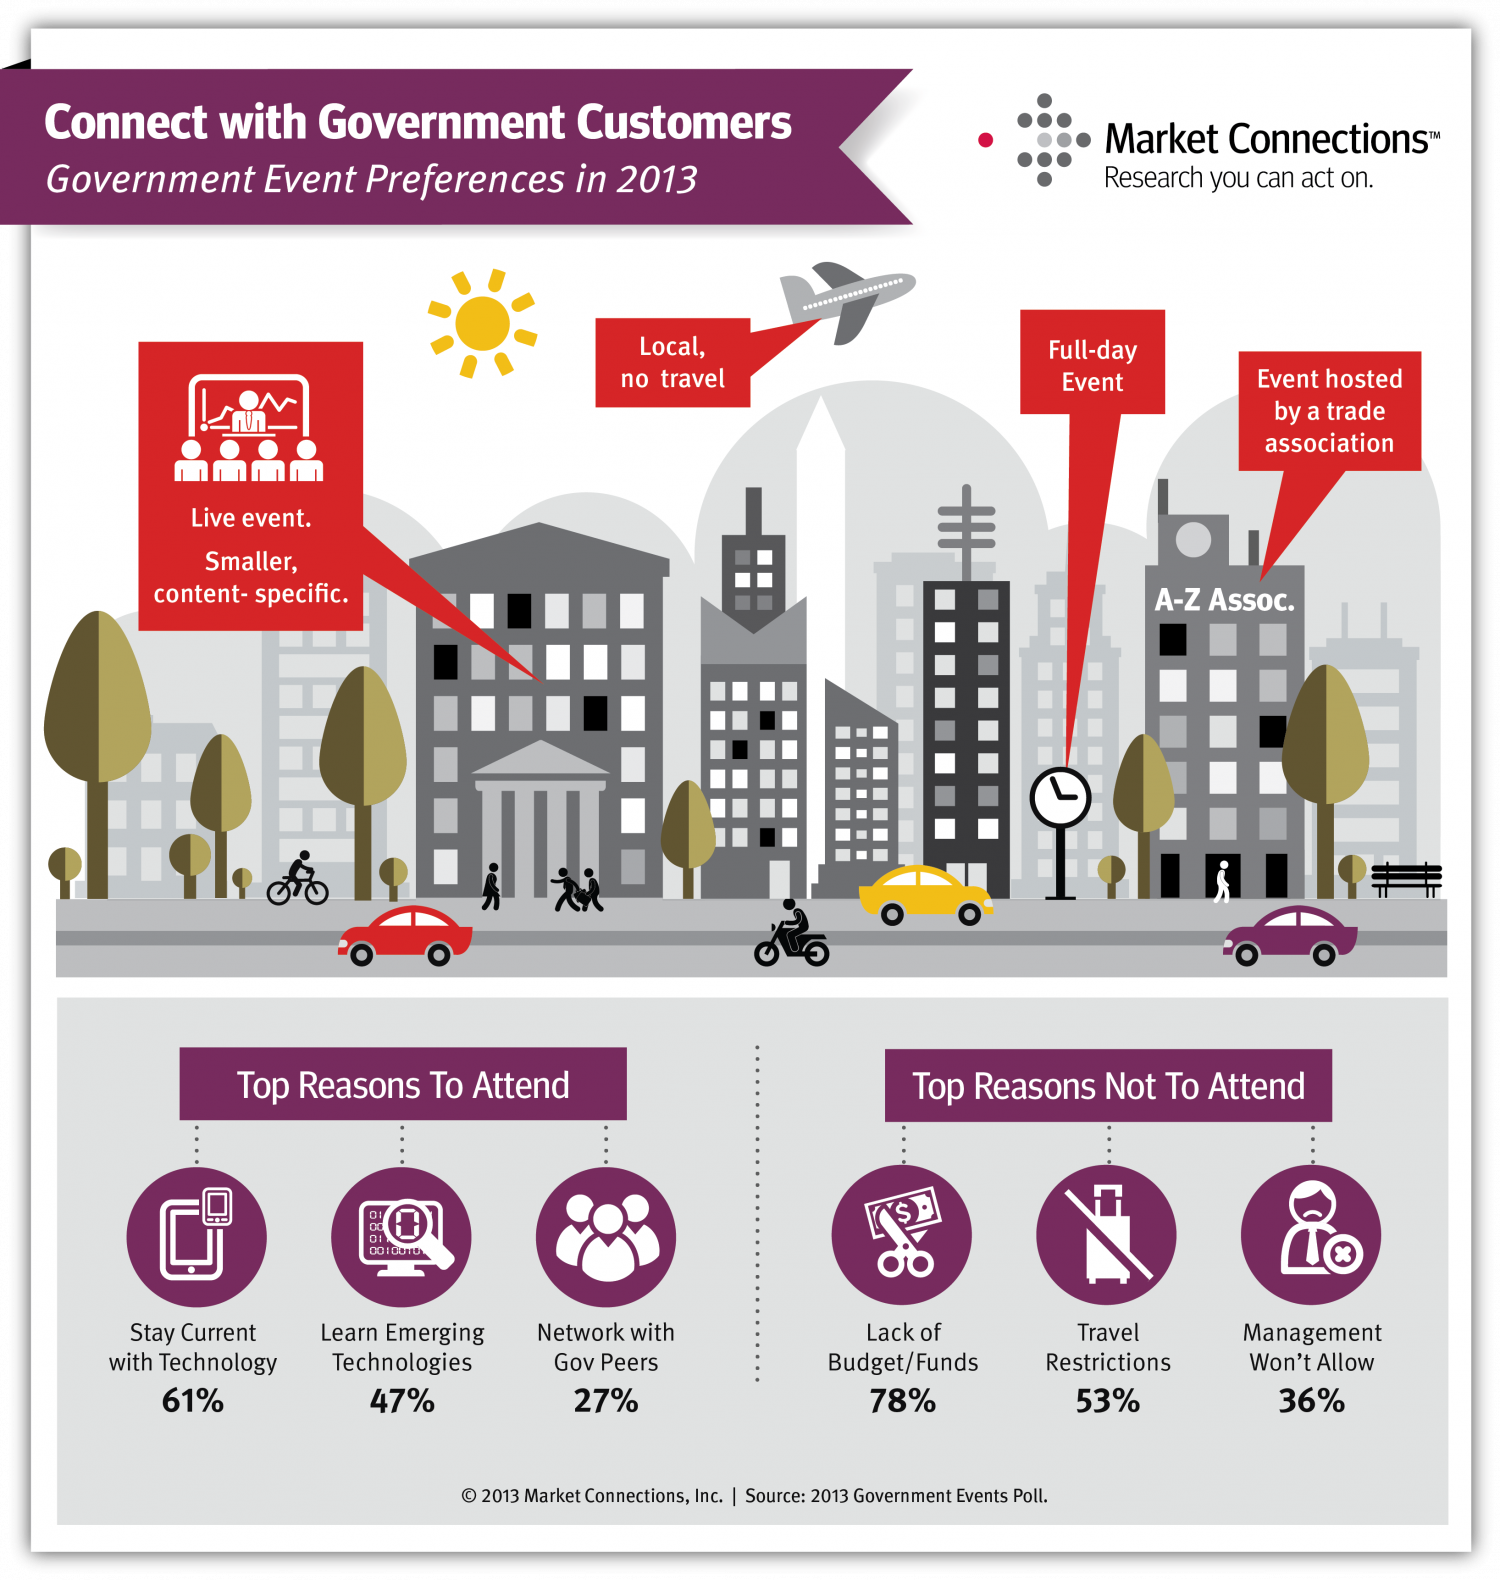 Connect with Government Customers Infographic